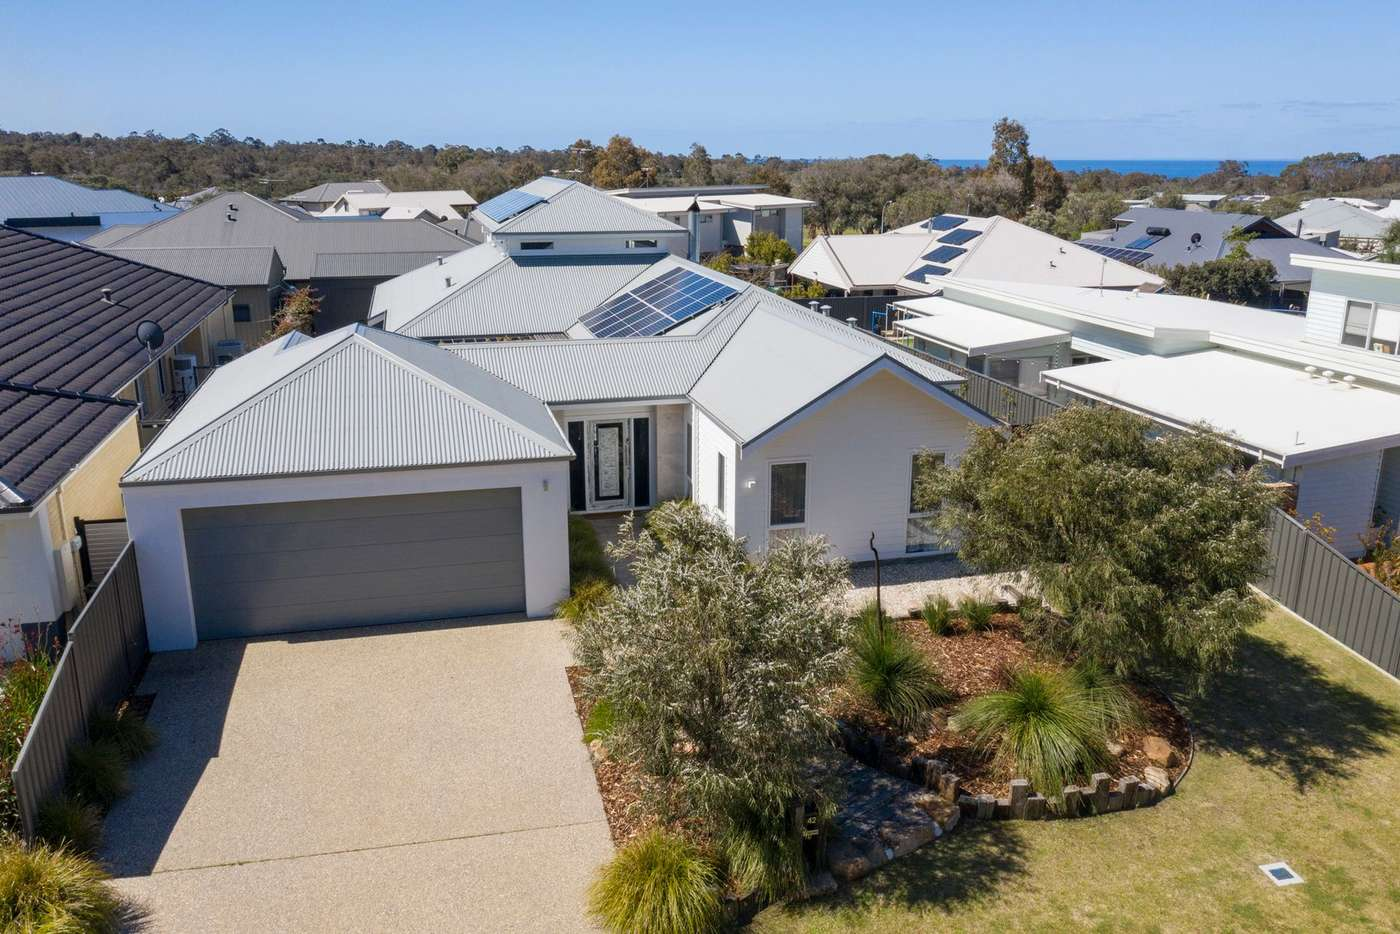 Main view of Homely house listing, 42 Butterworth Springs Avenue, Dunsborough WA 6281